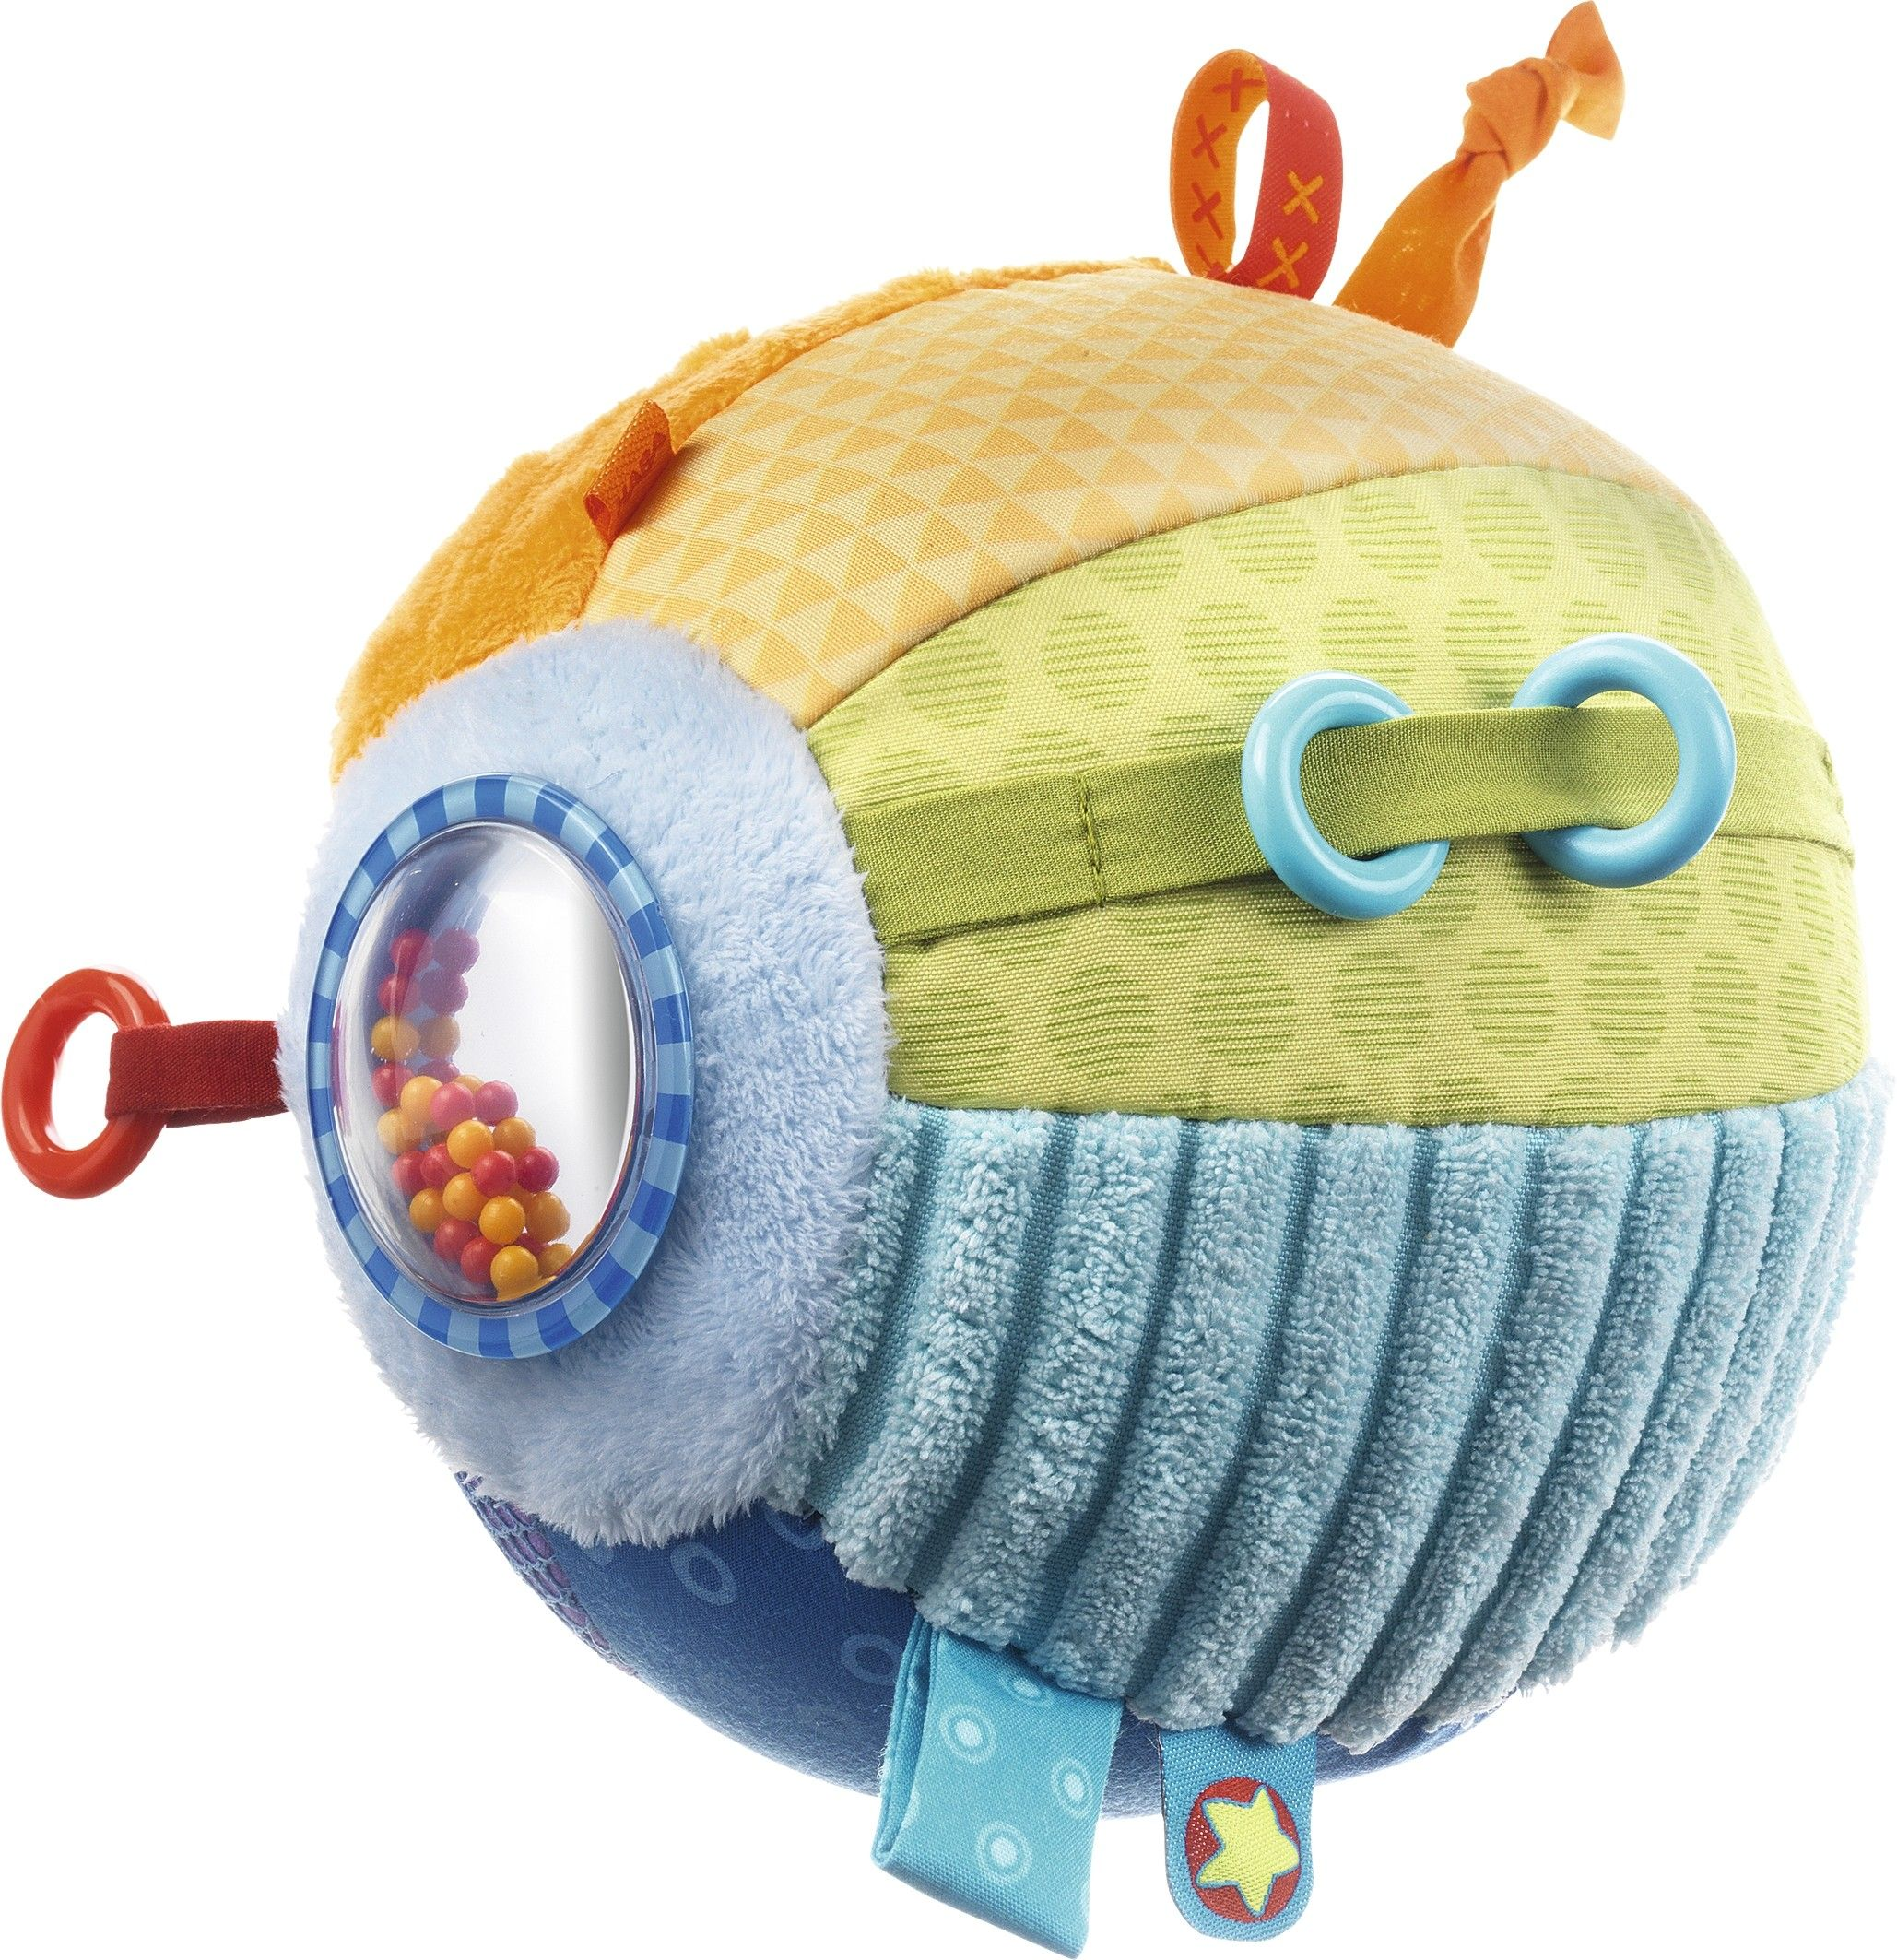 Discovery Ball All Colors - Baby Toy   Baby learning toys ...